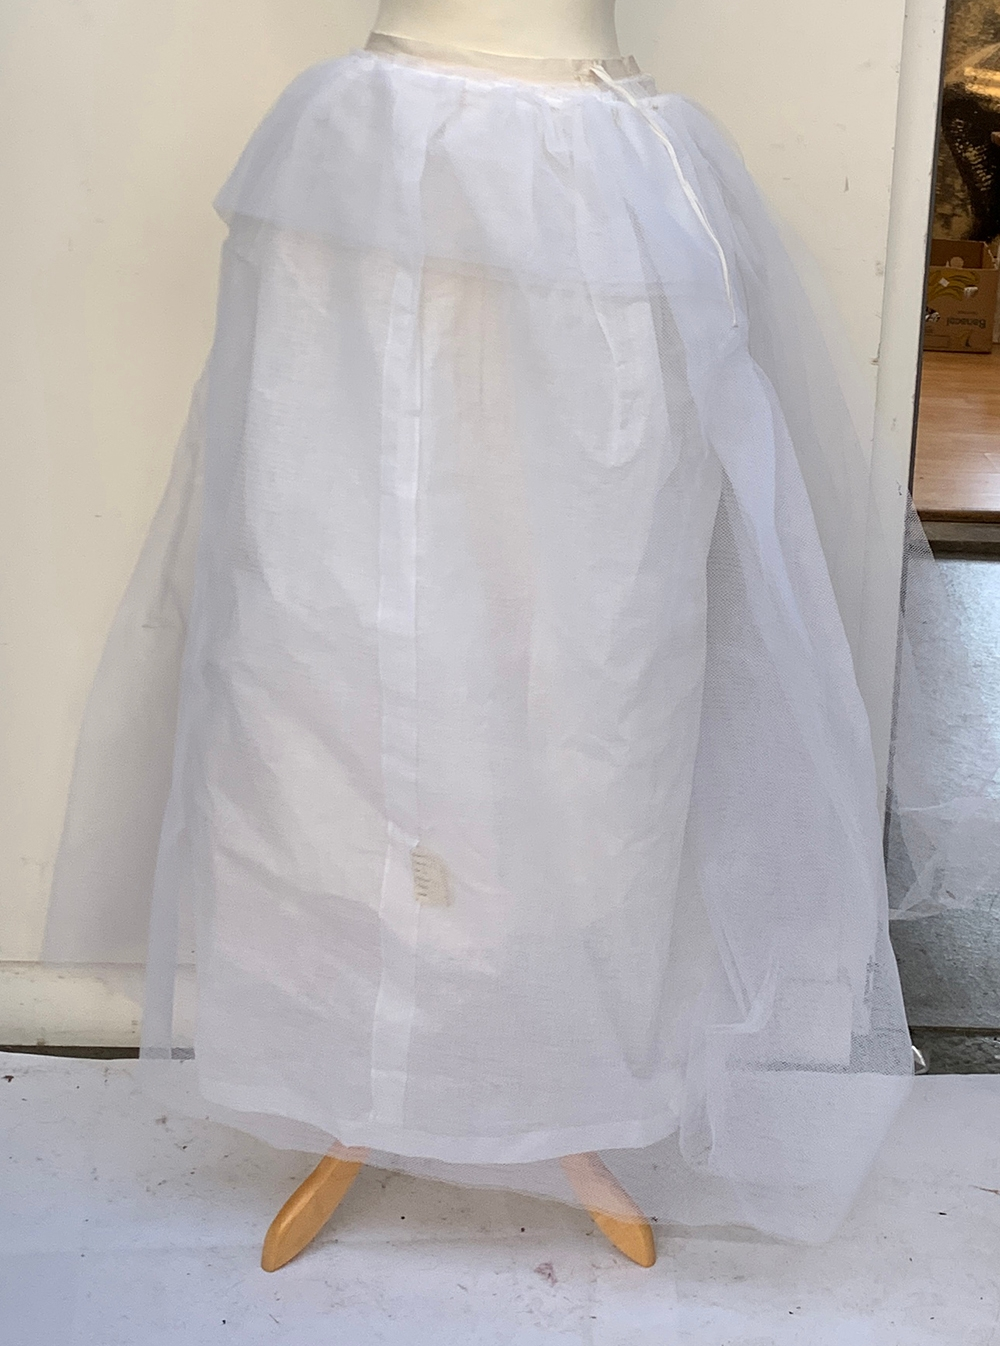 A vintage Lilywhites tennis skirt, together with an underskirt, hooped skirt, etc, in a large - Image 3 of 5